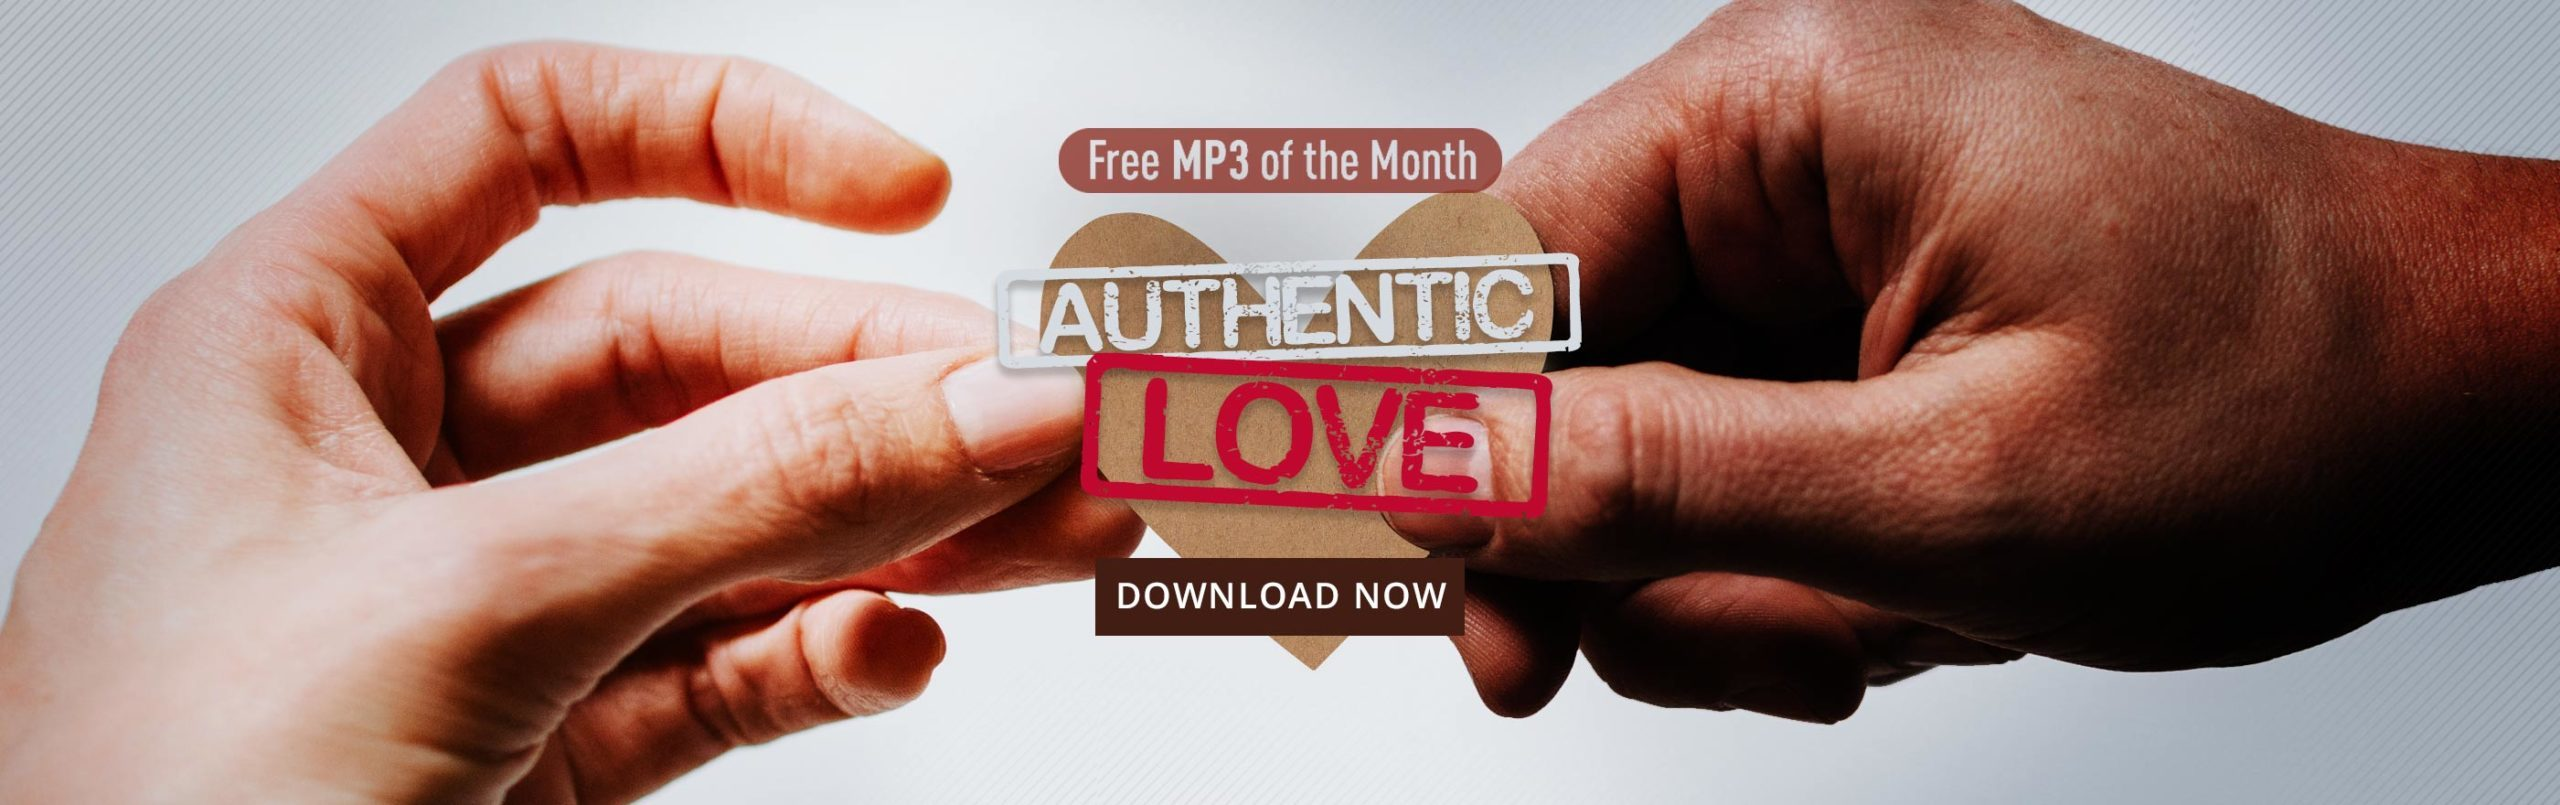 Free MP3: Authentic Love